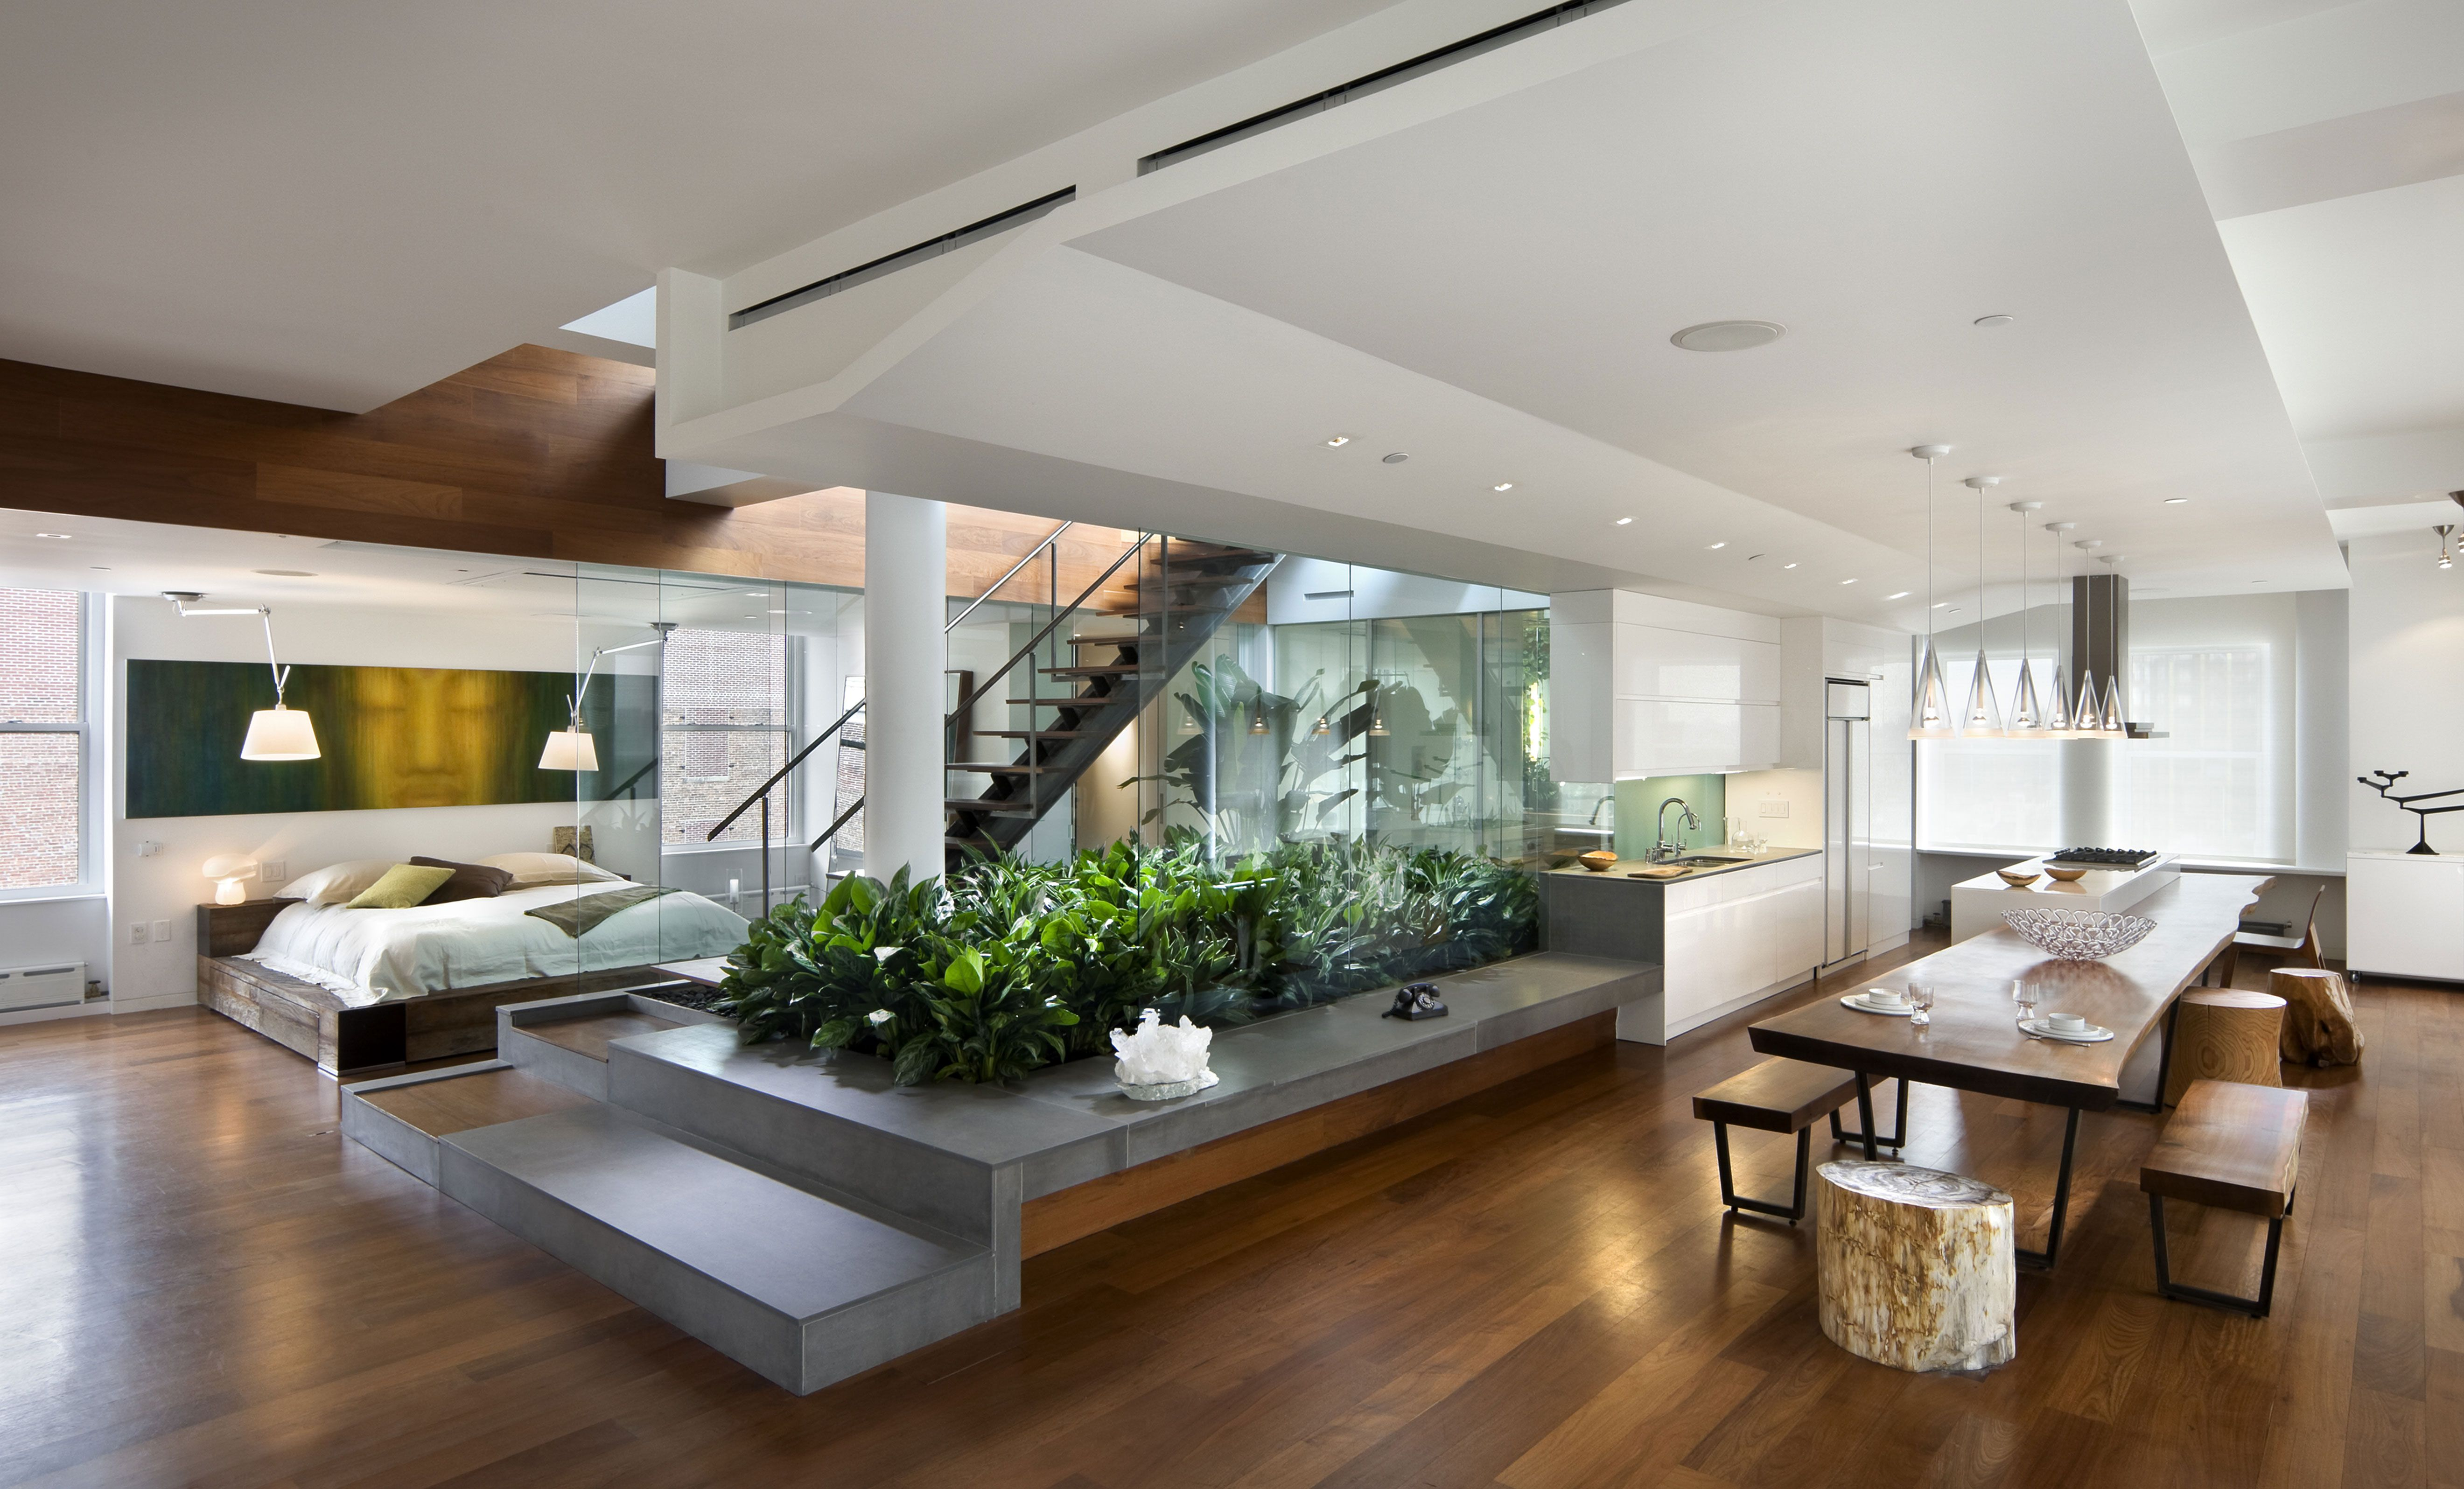 Interior wonderful design modern indoor plants contemporary exciting potted for decoration at house flower dental office design floor plans office design